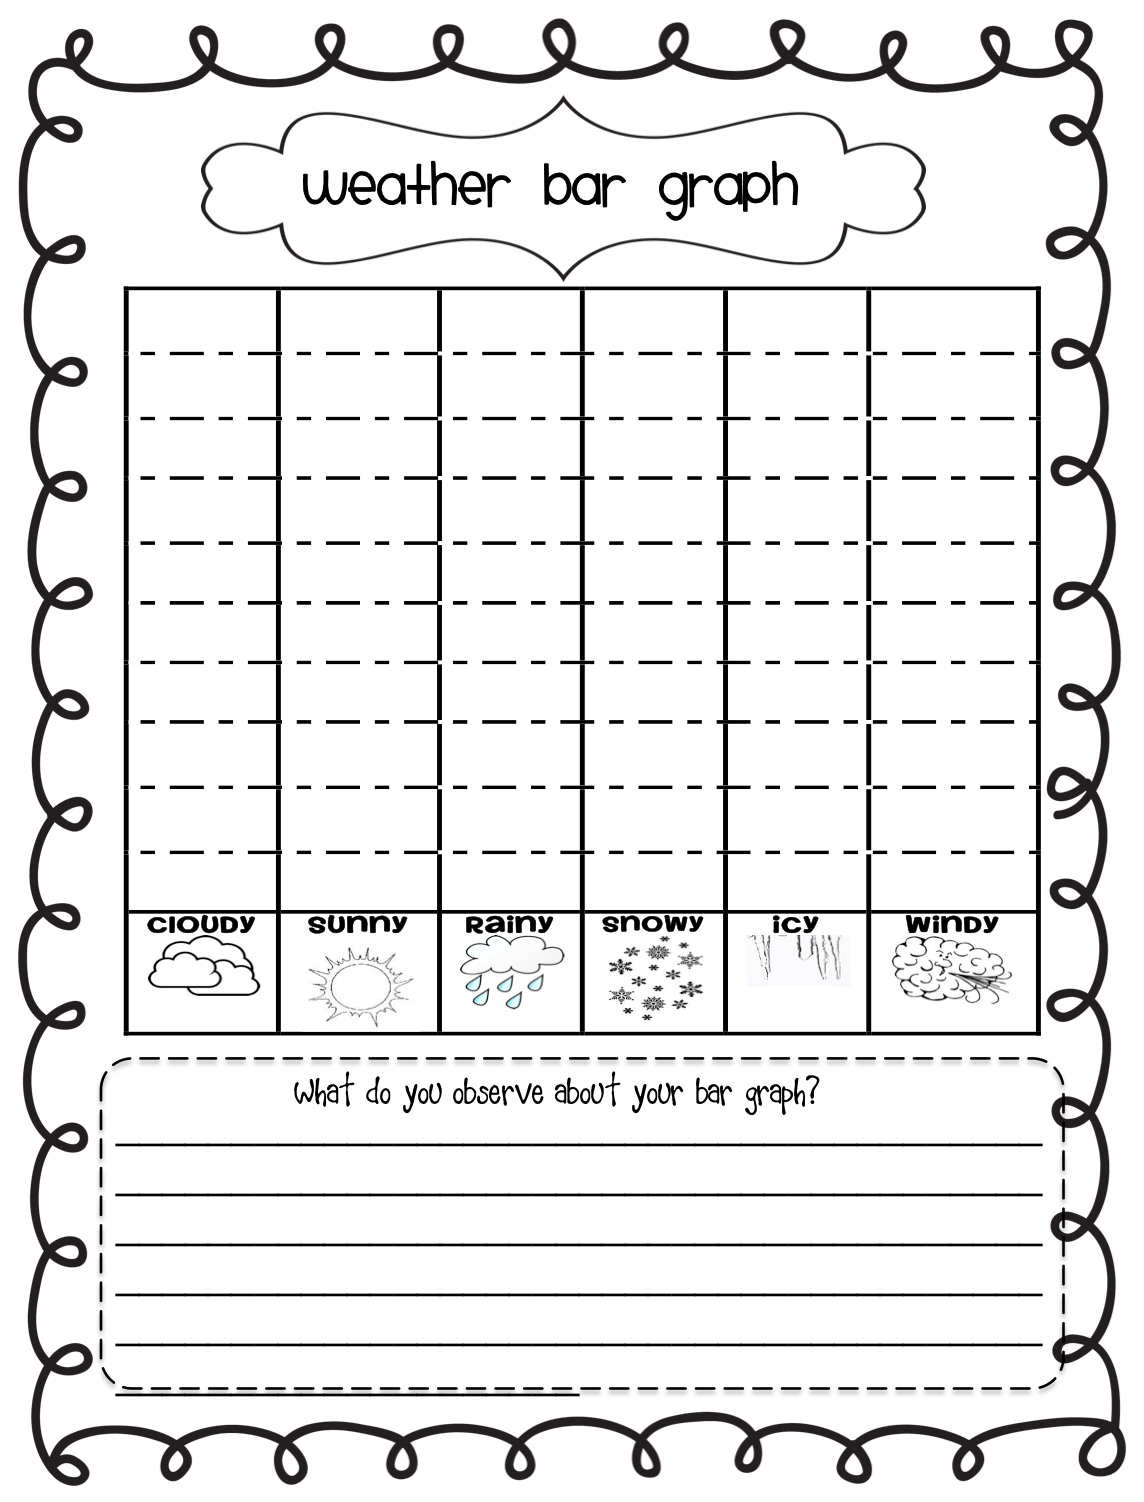 hight resolution of Elementary Bar Graph Worksheet   Printable Worksheets and Activities for  Teachers